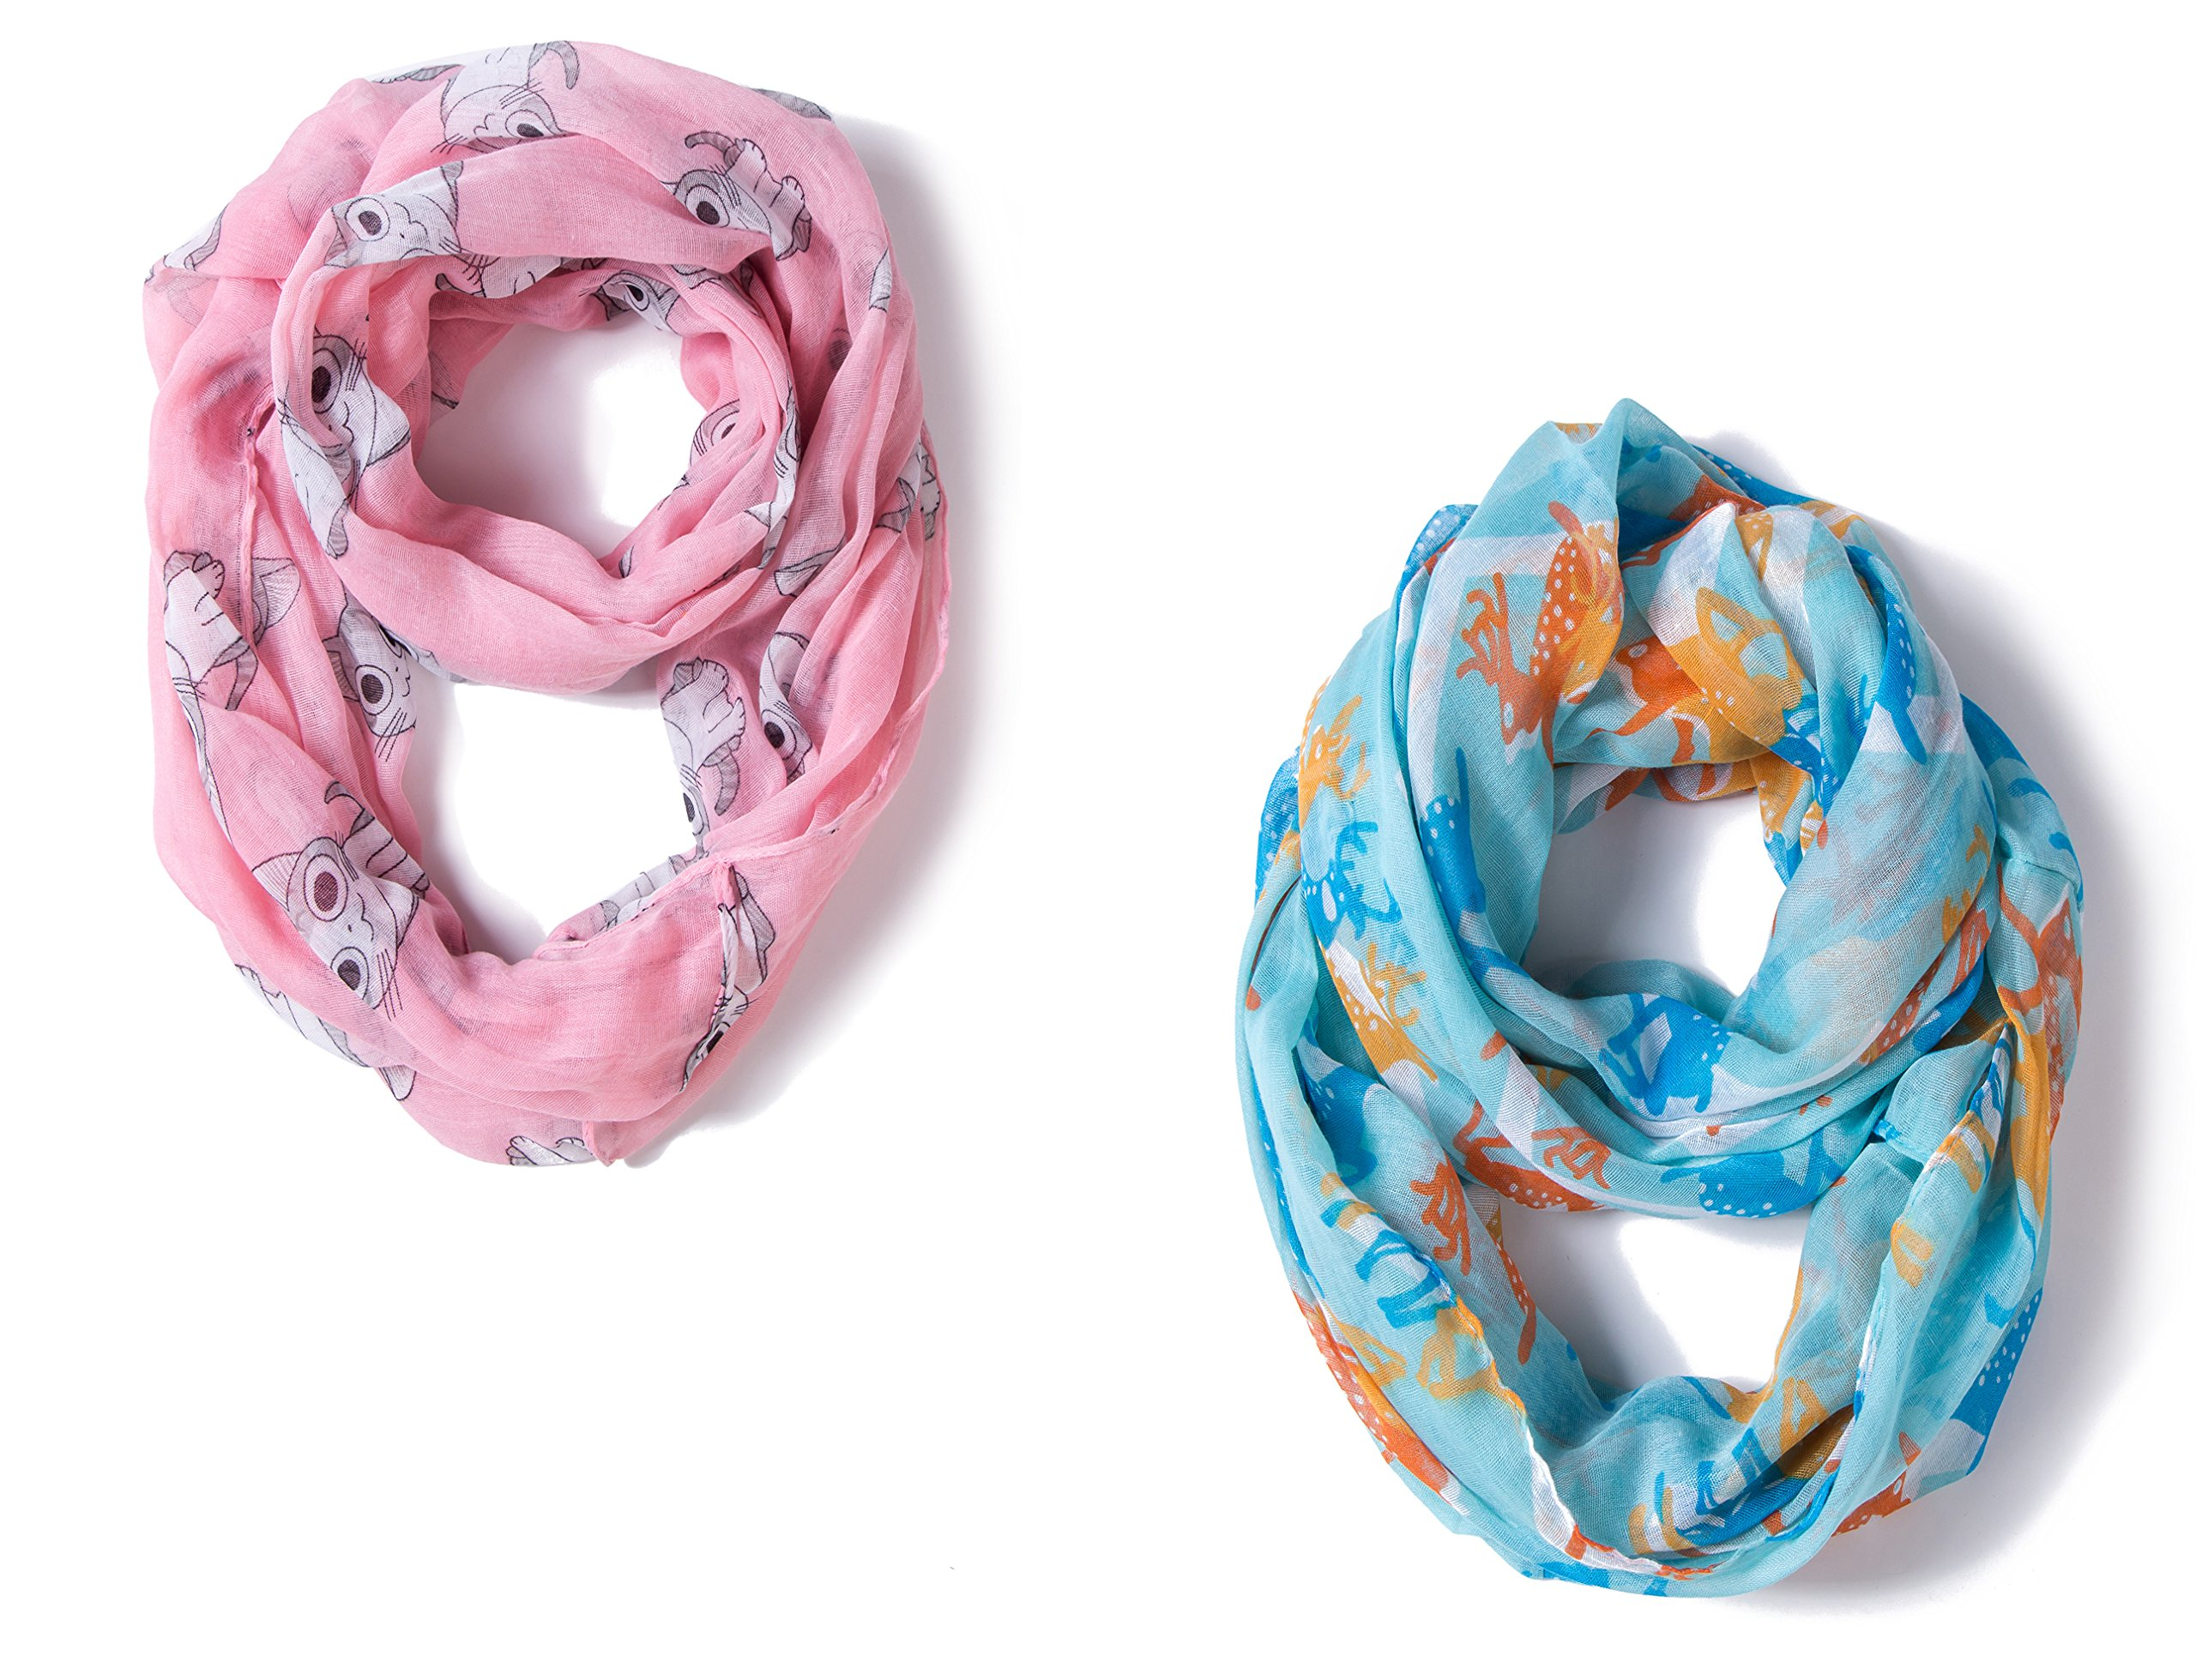 Baby Lightweight Infinity Scarves Toddler Girls Boys Shawl Wraps for Kids by A Sund (pair2#)